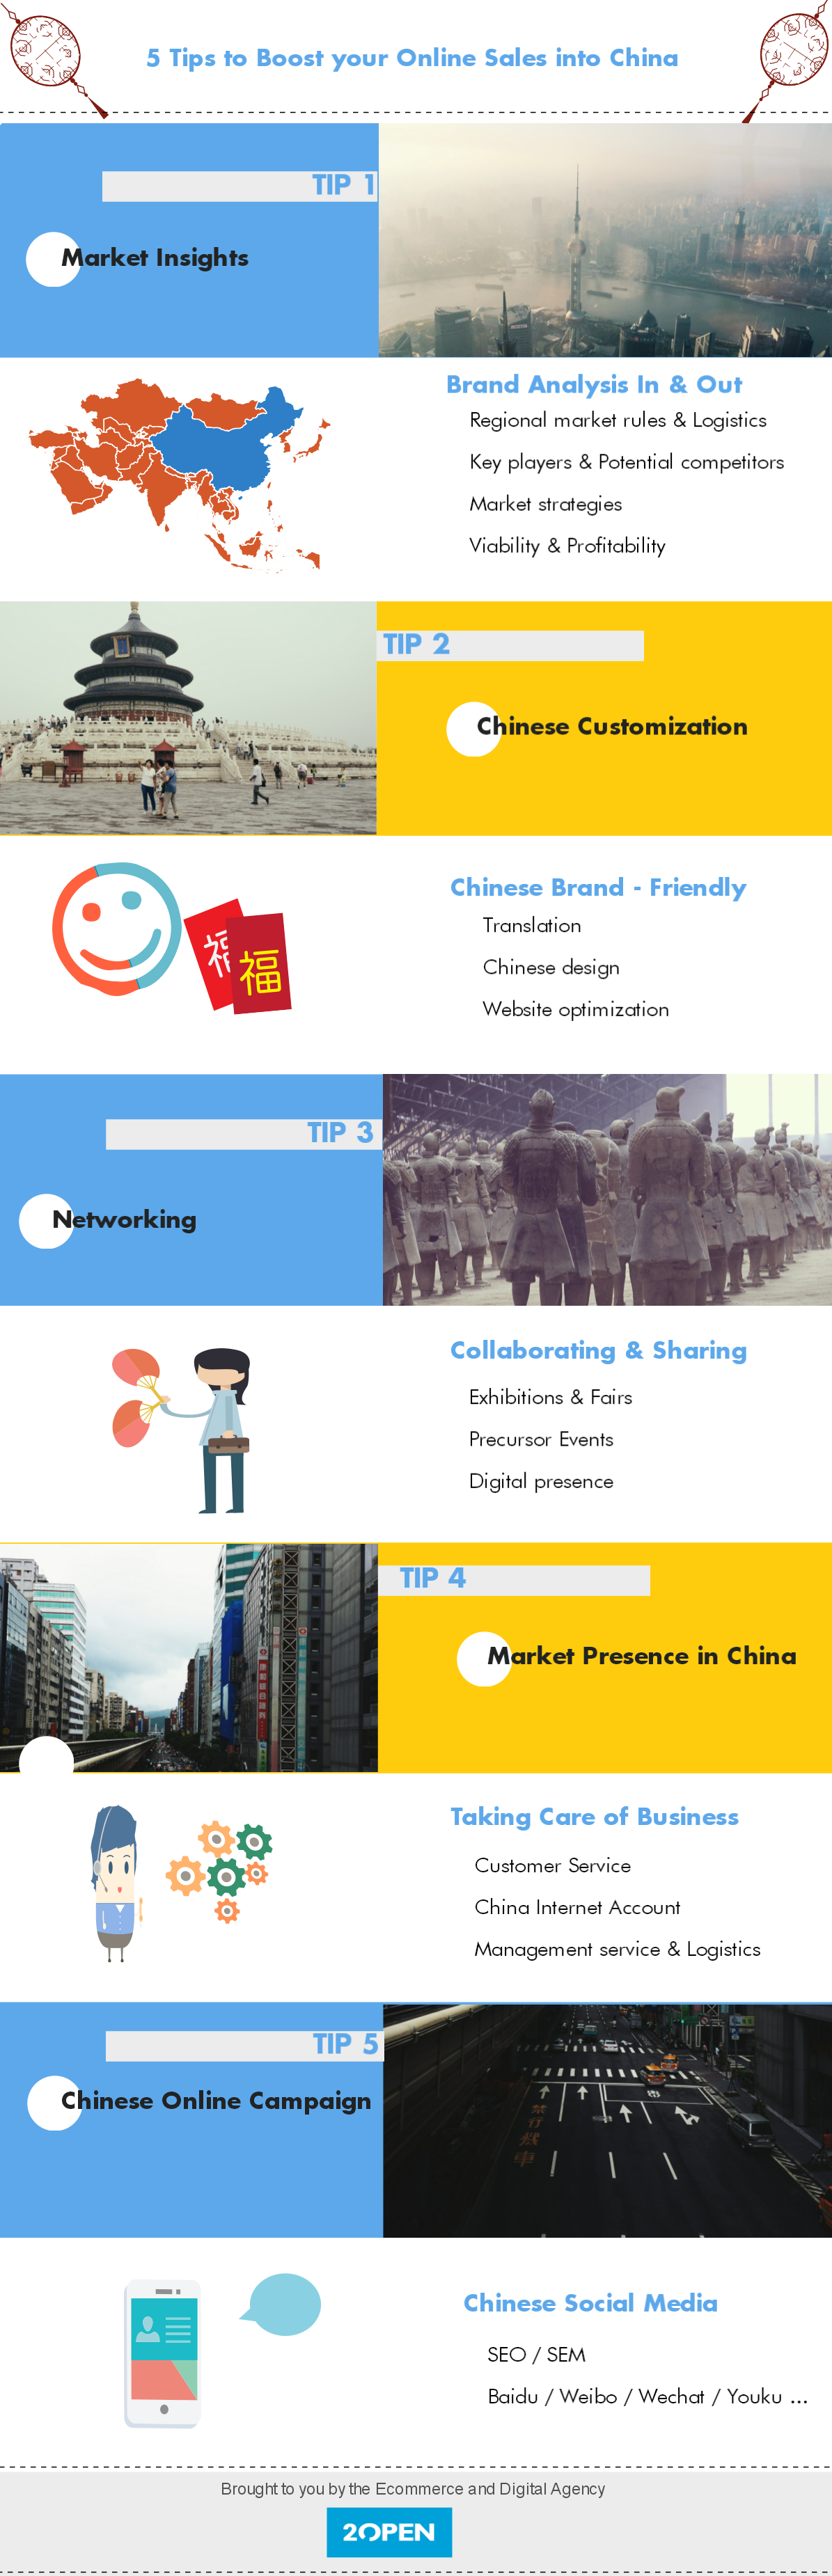 5 tips to boost your online sales into China